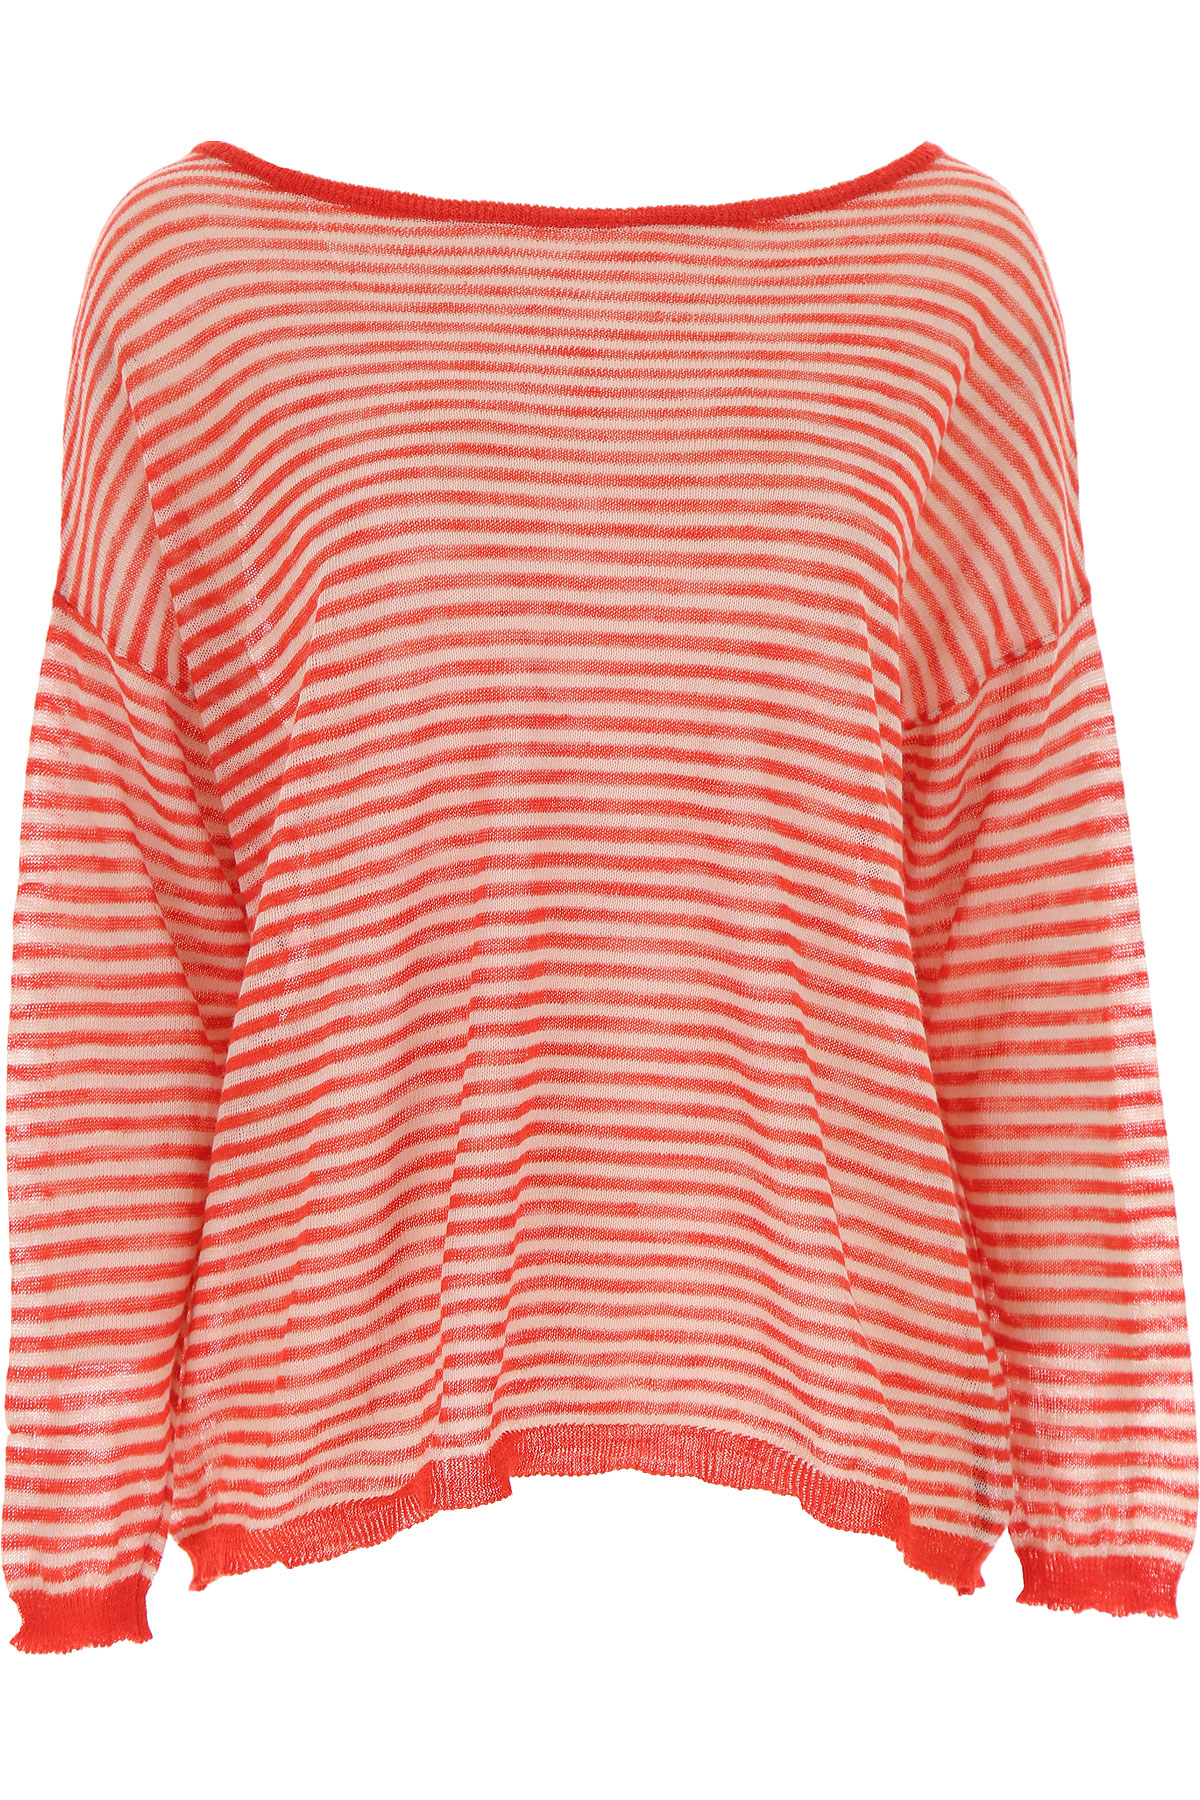 Roberto Collina Top for Women On Sale, Red, Cotton, 2019, 4 6 XS